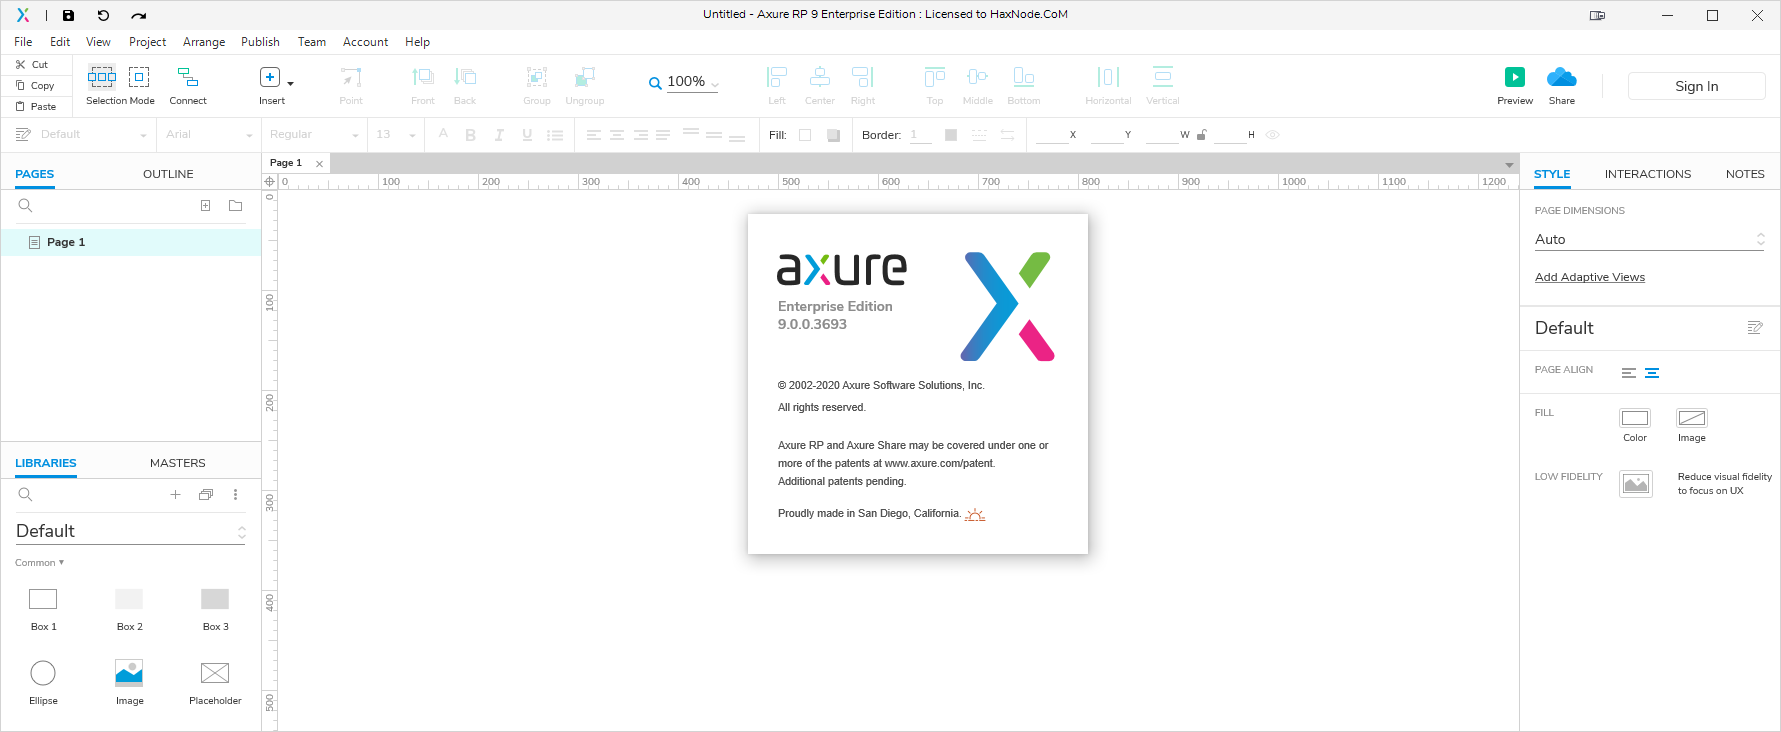 axure9.3693